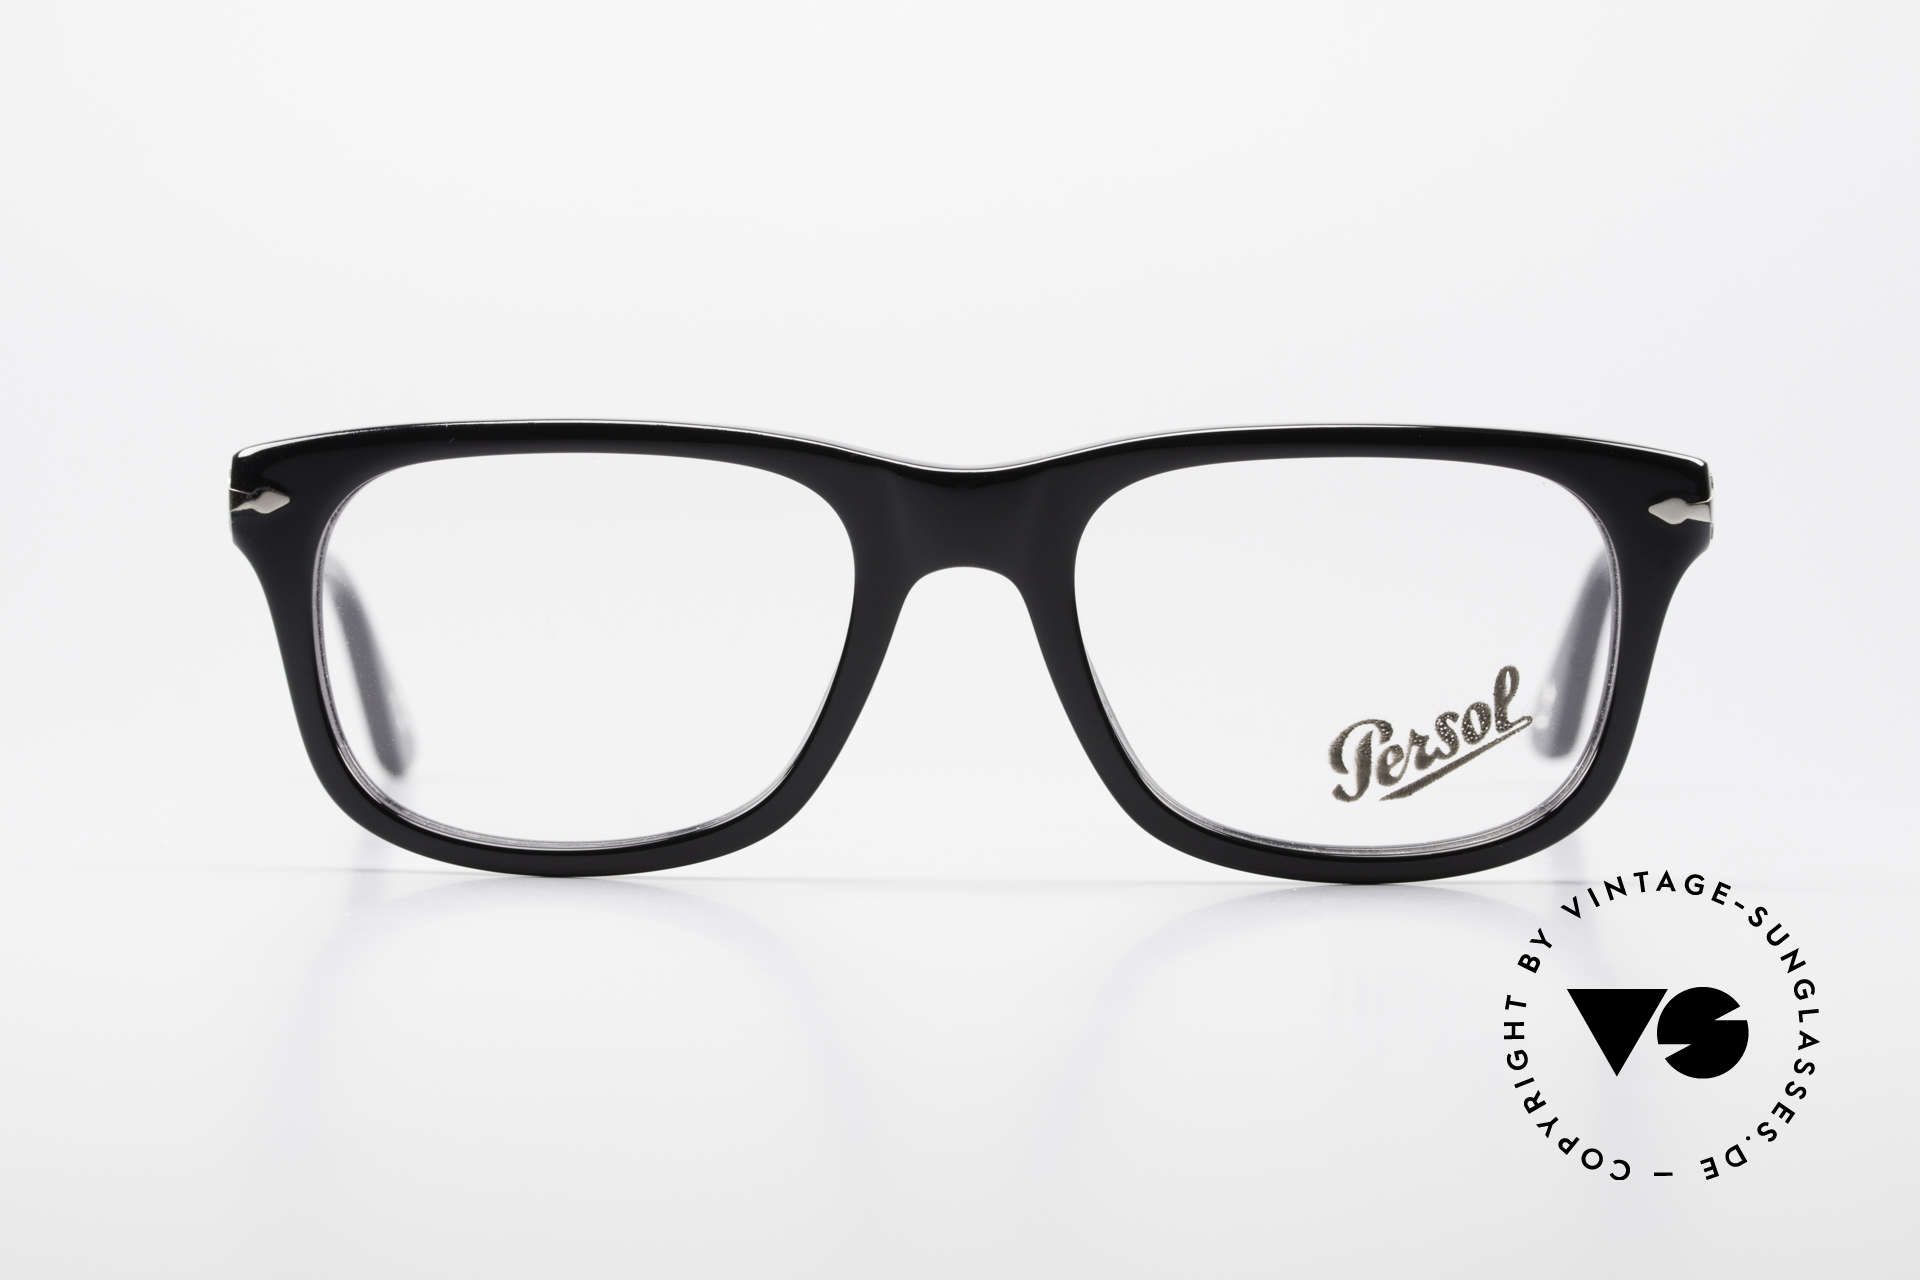 Persol 3029 Striking Persol Glasses Unisex, unworn (like all our classic PERSOL eyeglasses), Made for Men and Women